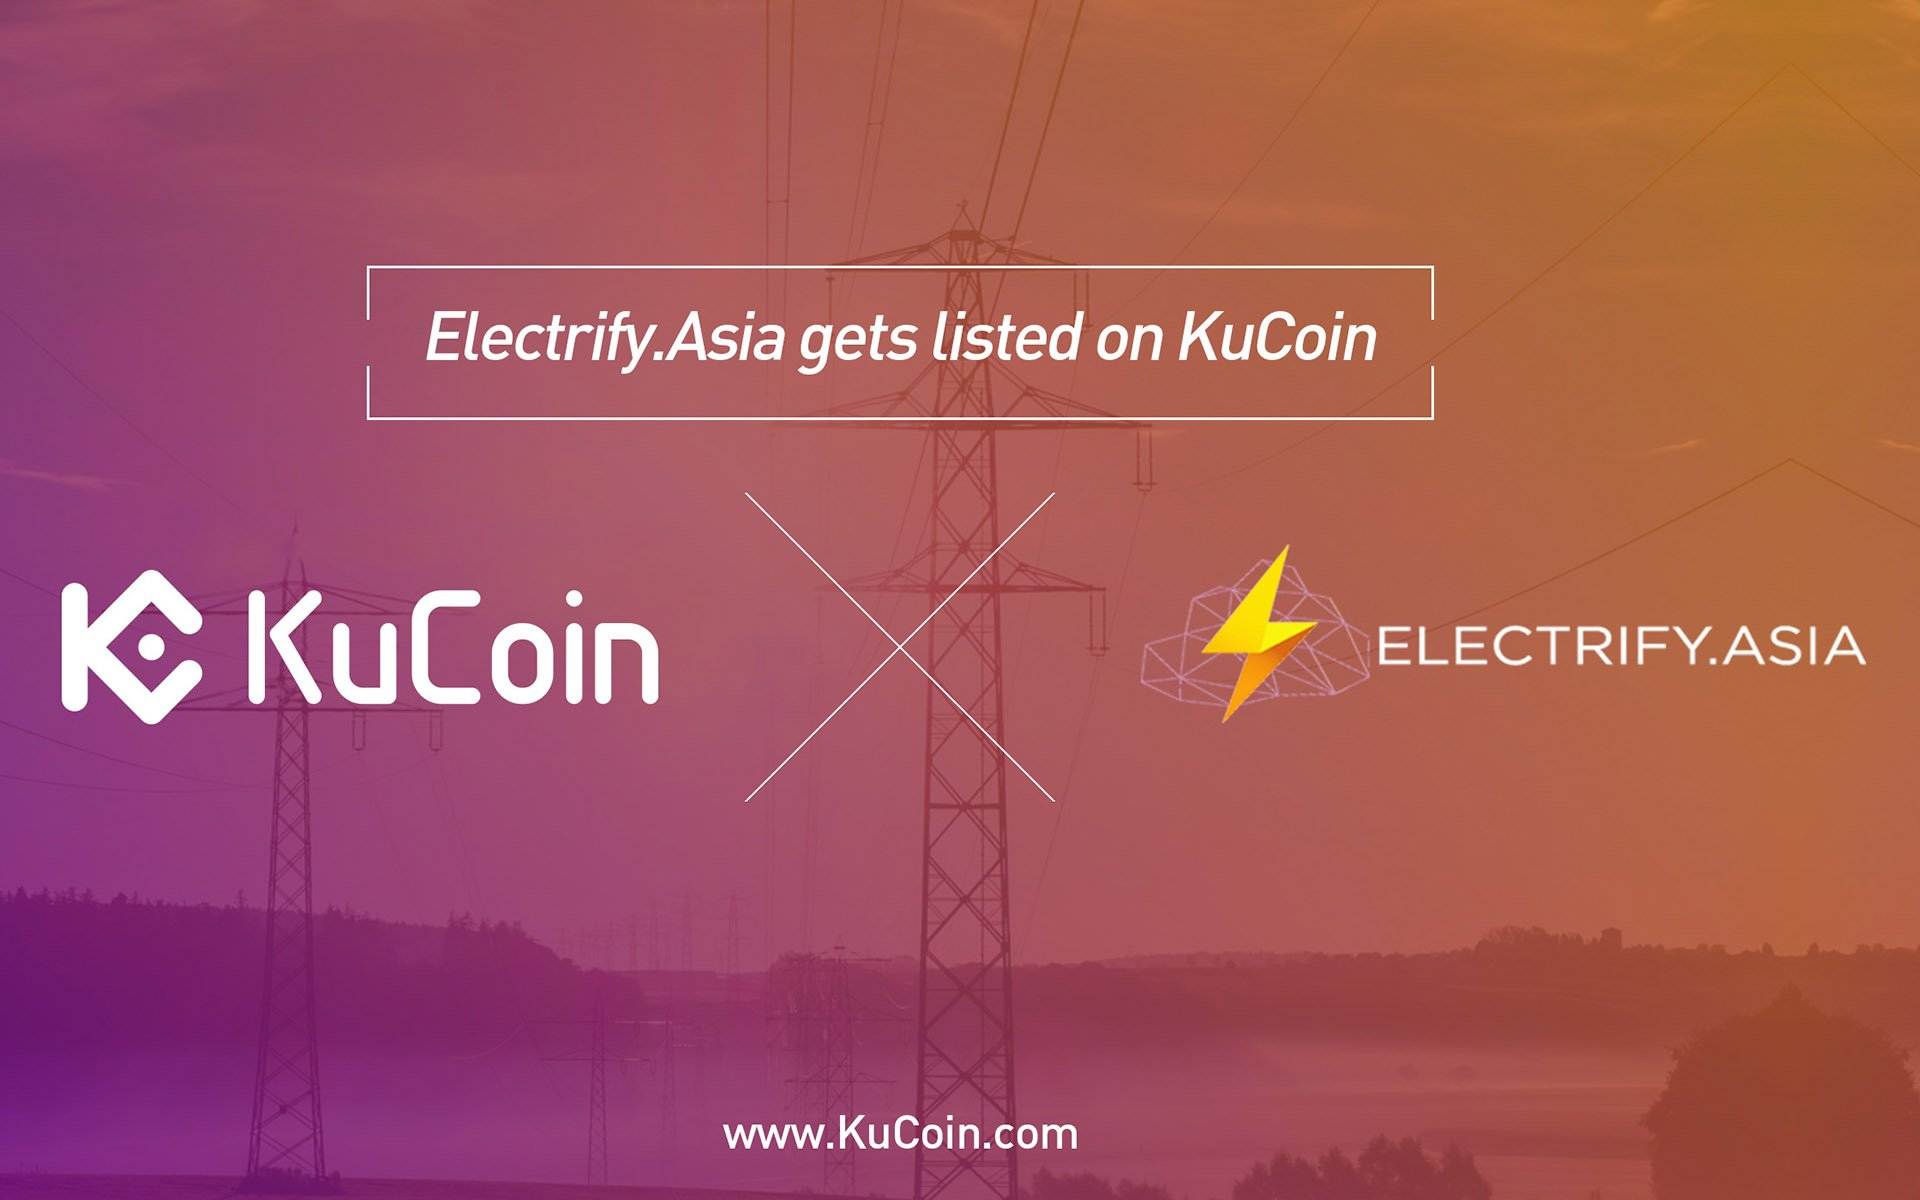 Electrify.Asia (ELEC) Gets Listed on KuCoin!